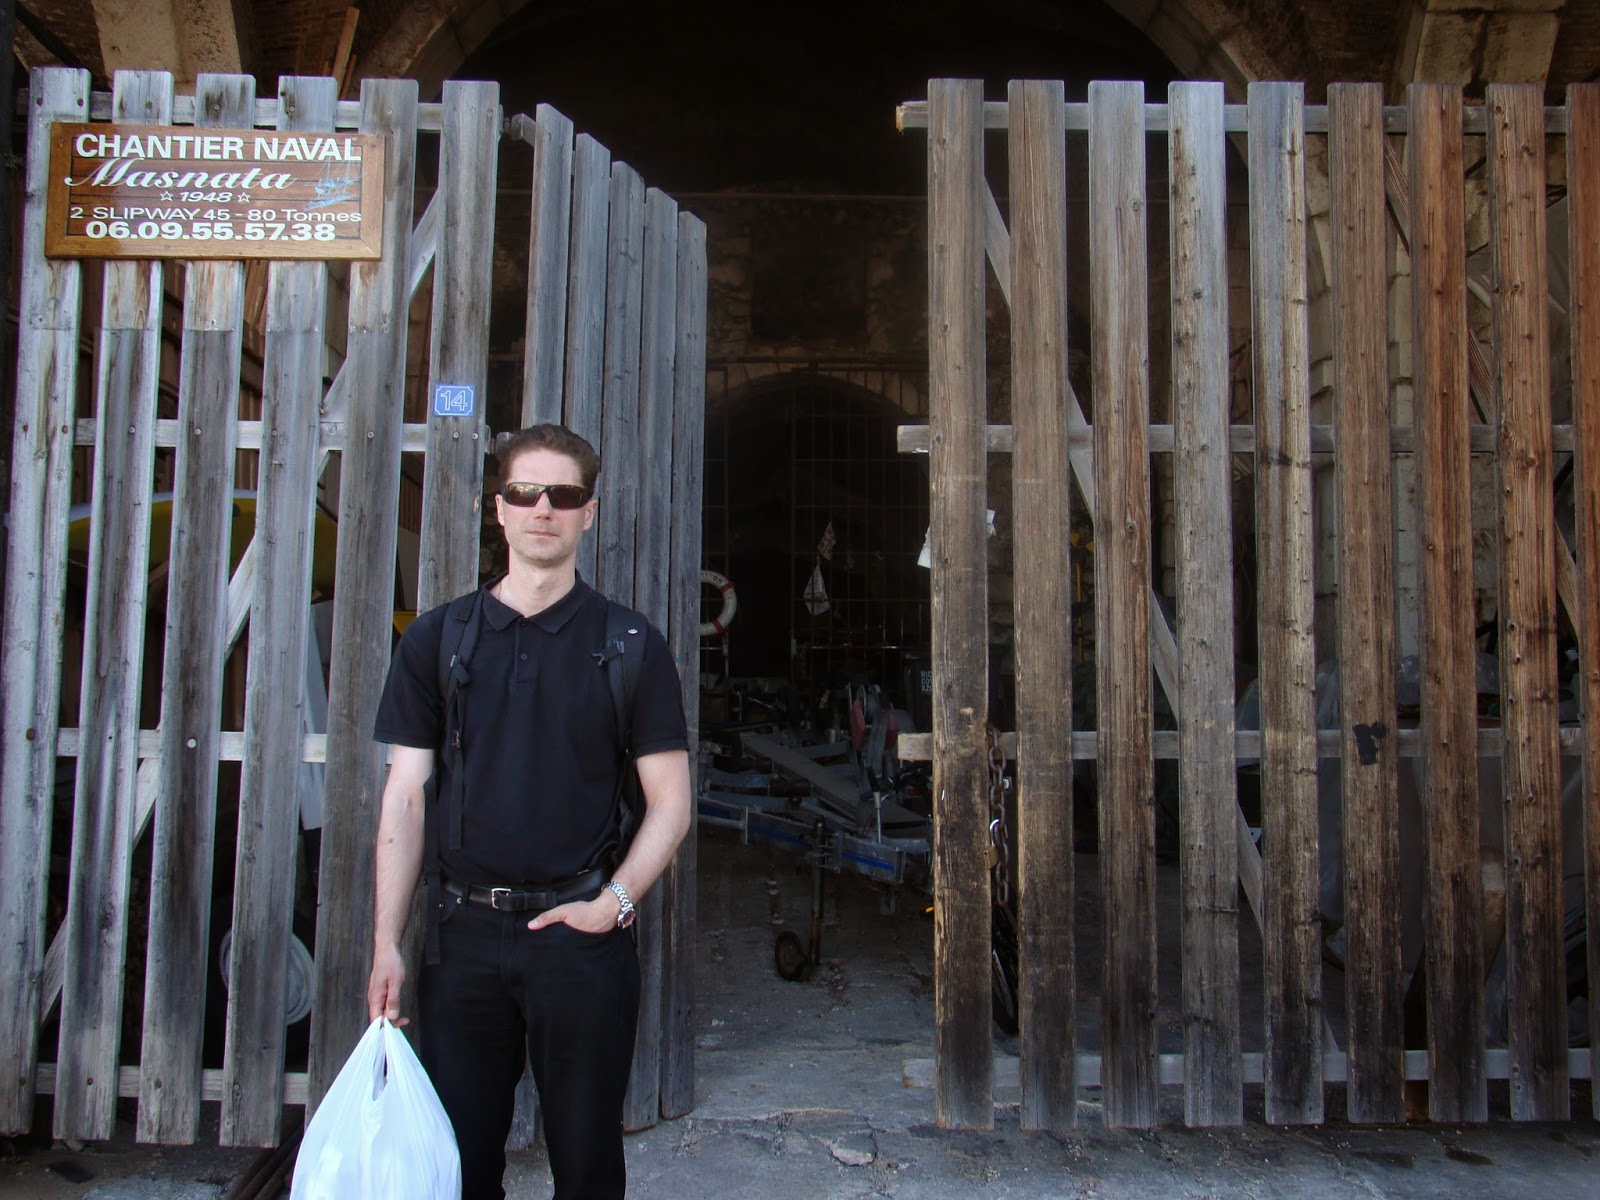 007 travelers 007 filming location old storage where